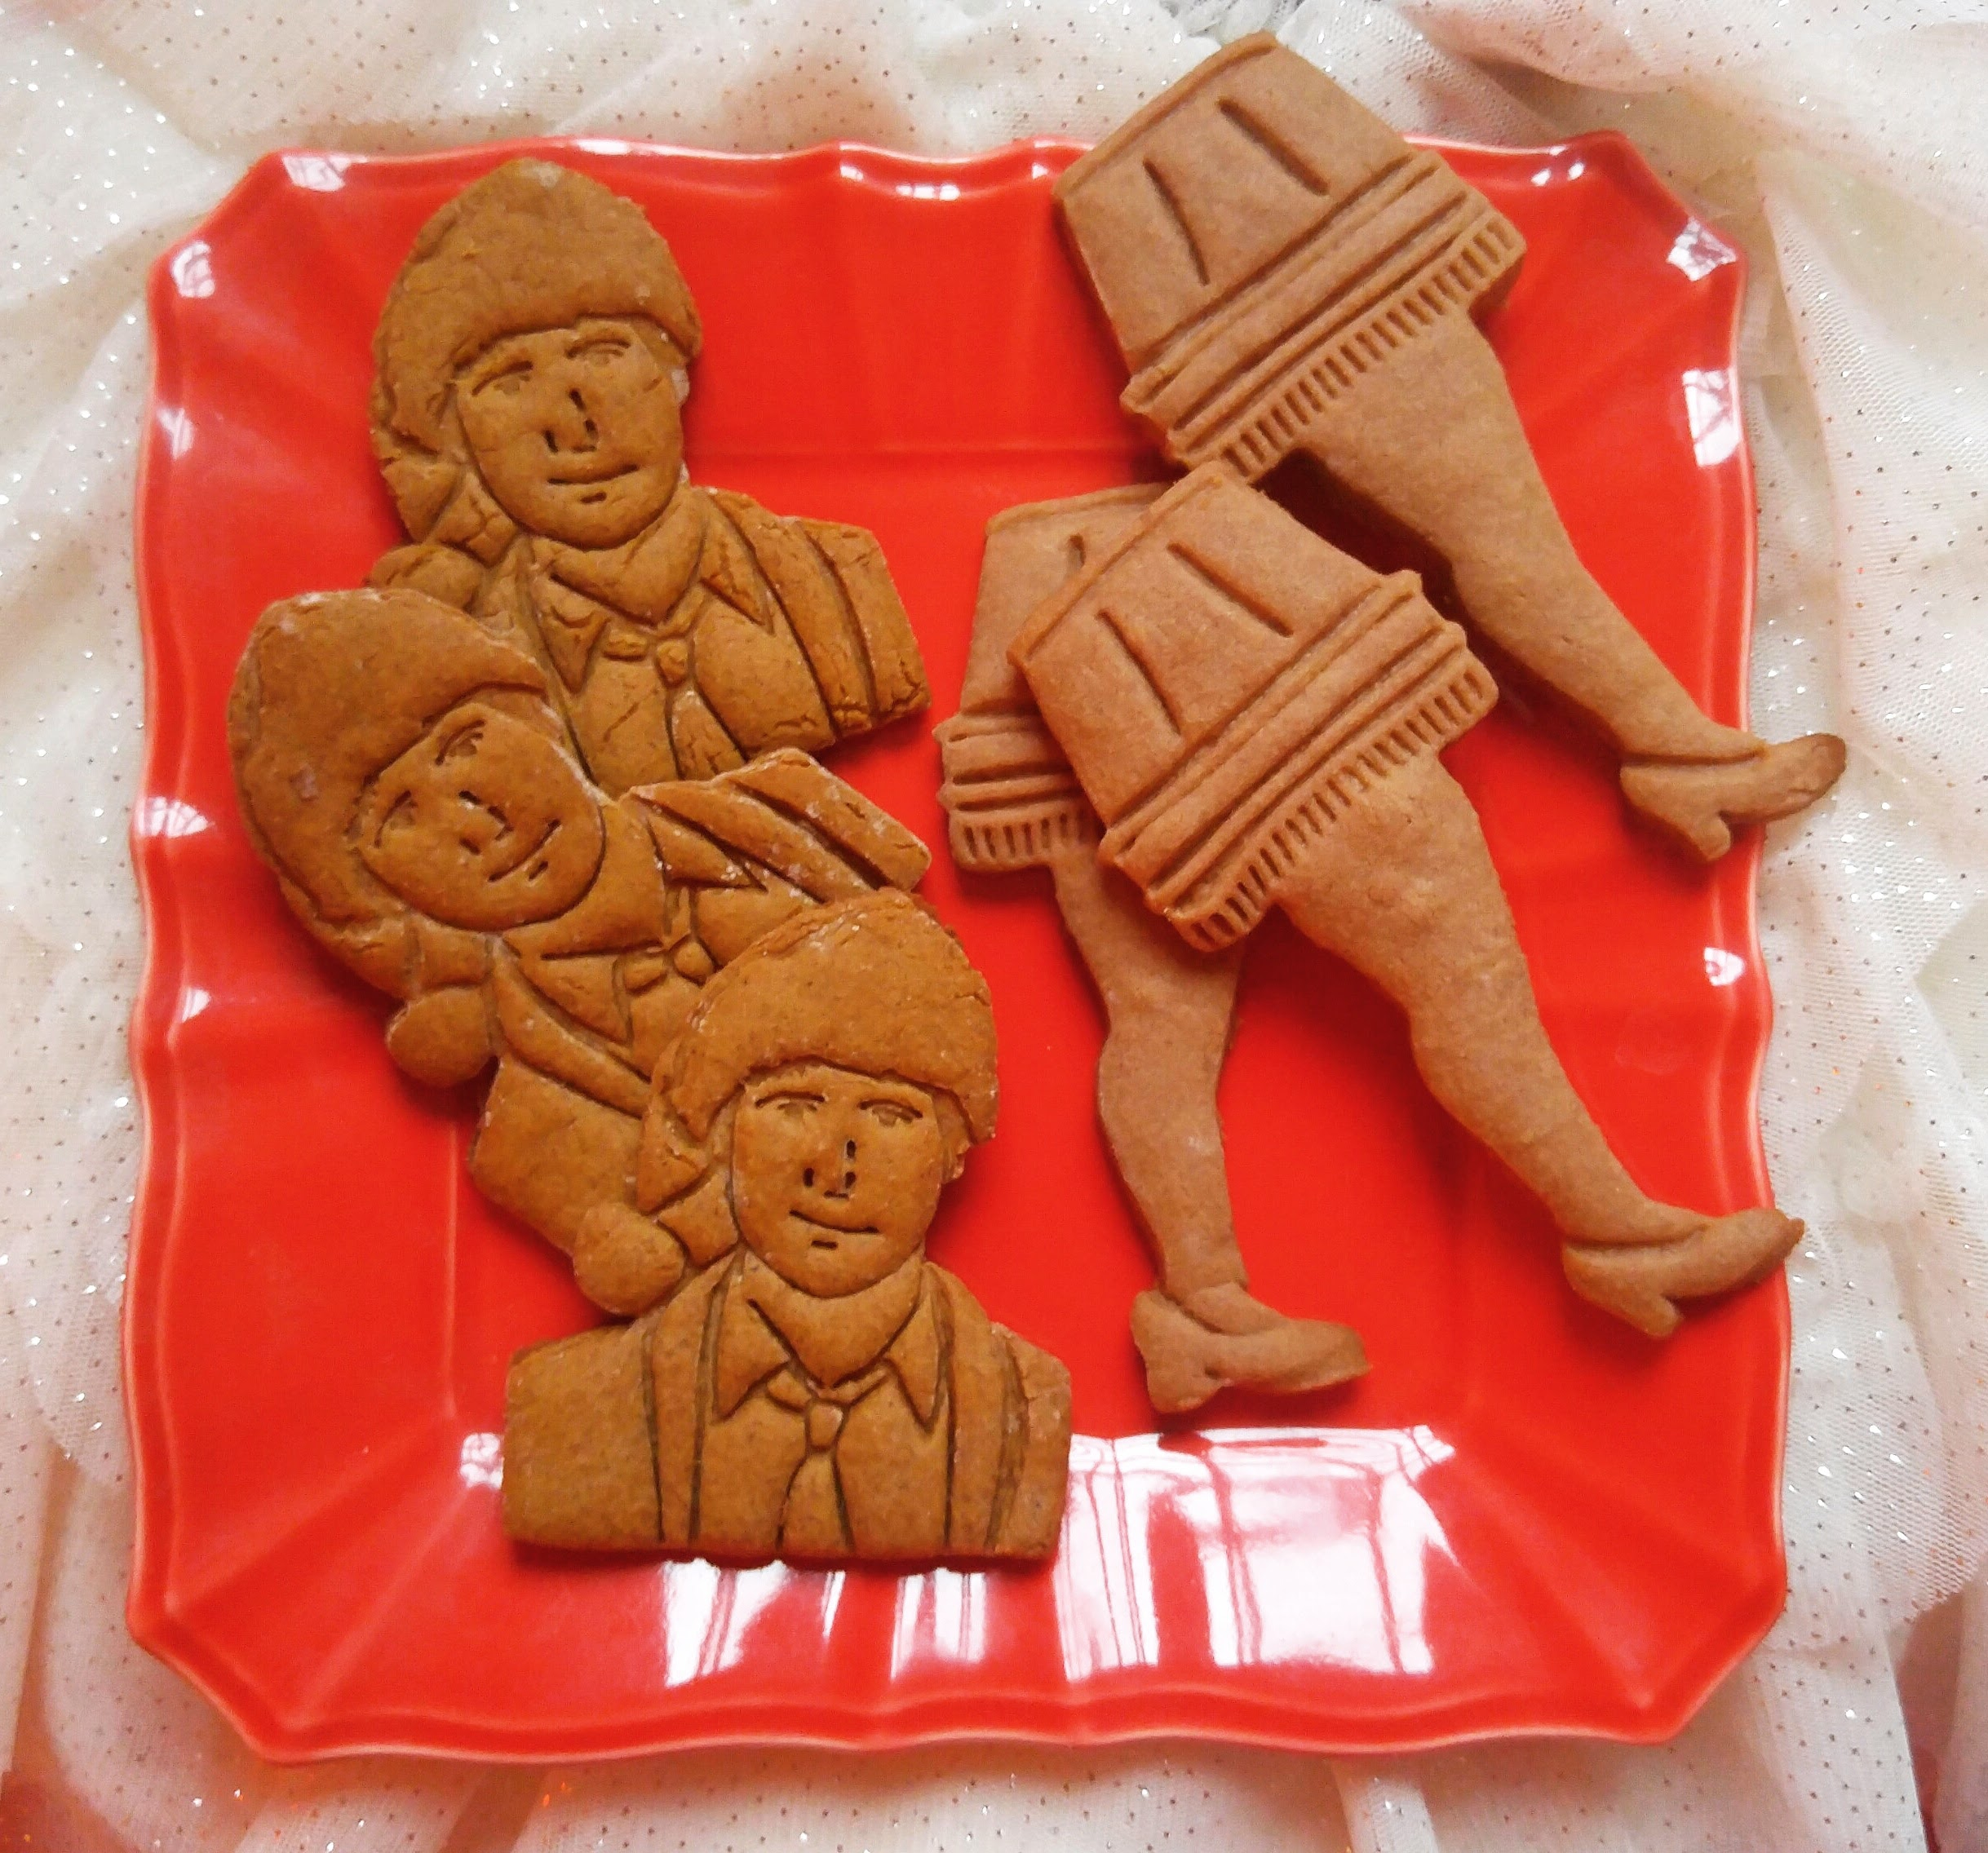 """Holiday movie classics!the Clark W. Griswold Jr. - """"Rusty"""" gingerbread cookies filled with eggnog icing. A sure way to enjoy a fun, old-fashioned family Christmas! Next, it's a major award! Malty Ovaltine biscuits filled with """"oh fudddge"""" filling."""